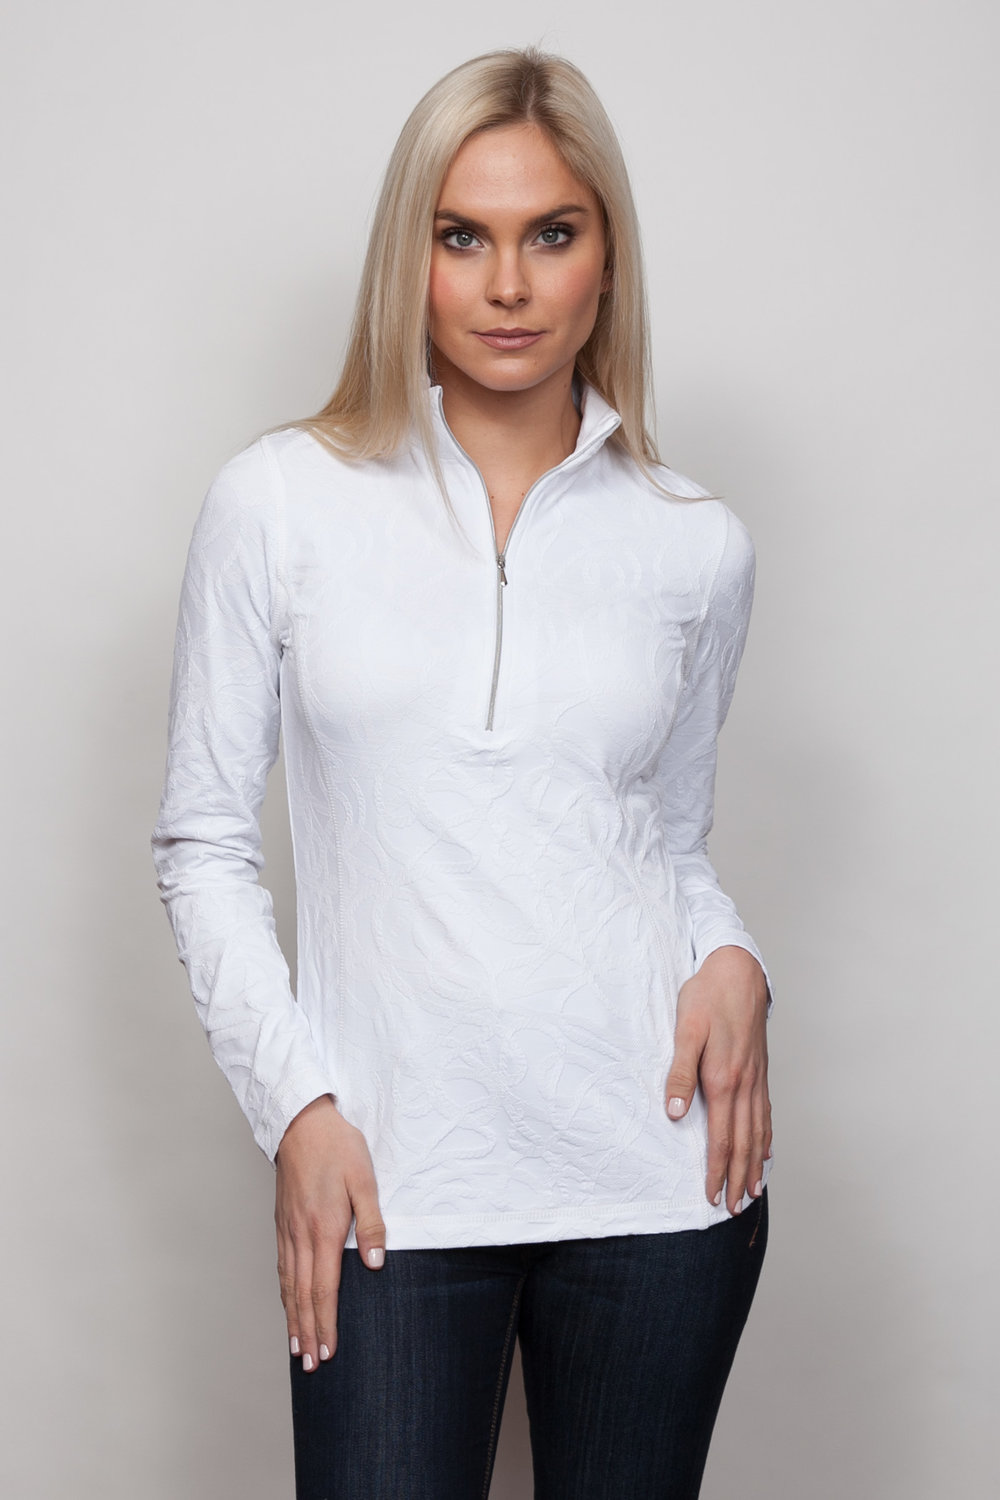 Copy of Style # 48738-18, p 9 </br>Braided Sport Jacq'd </br>Color: White